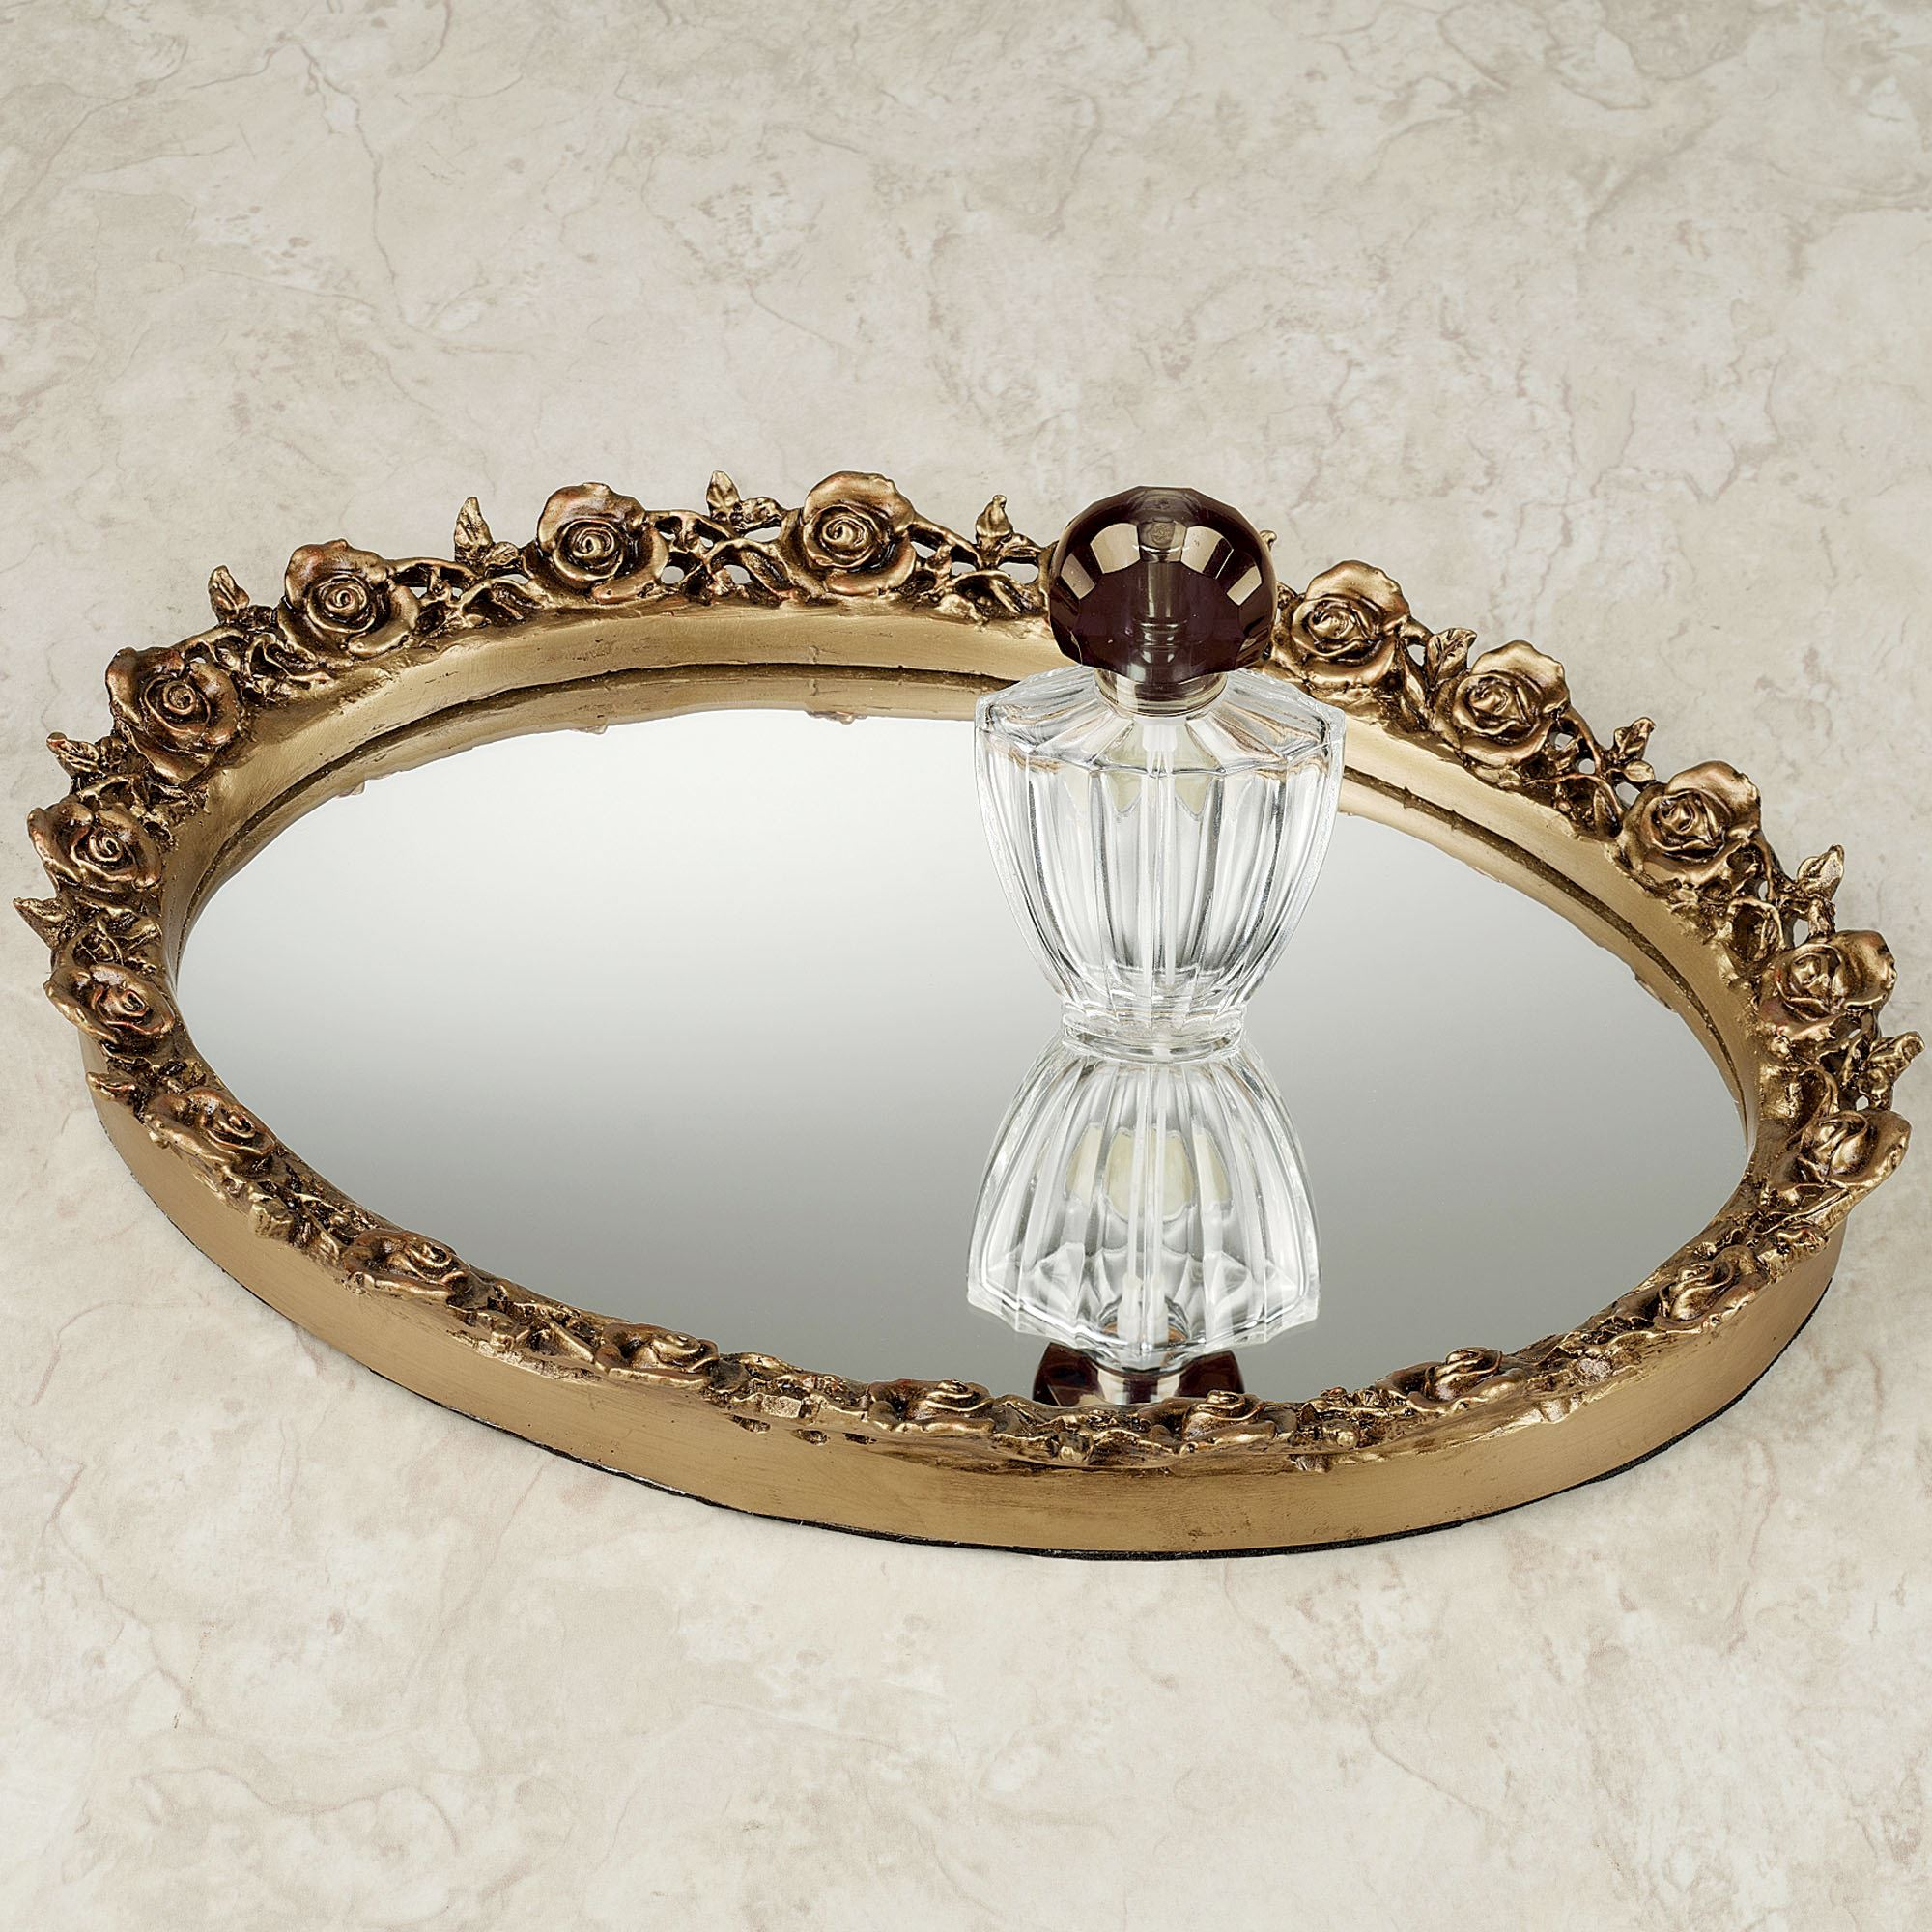 Appealing design mirror tray with modern design